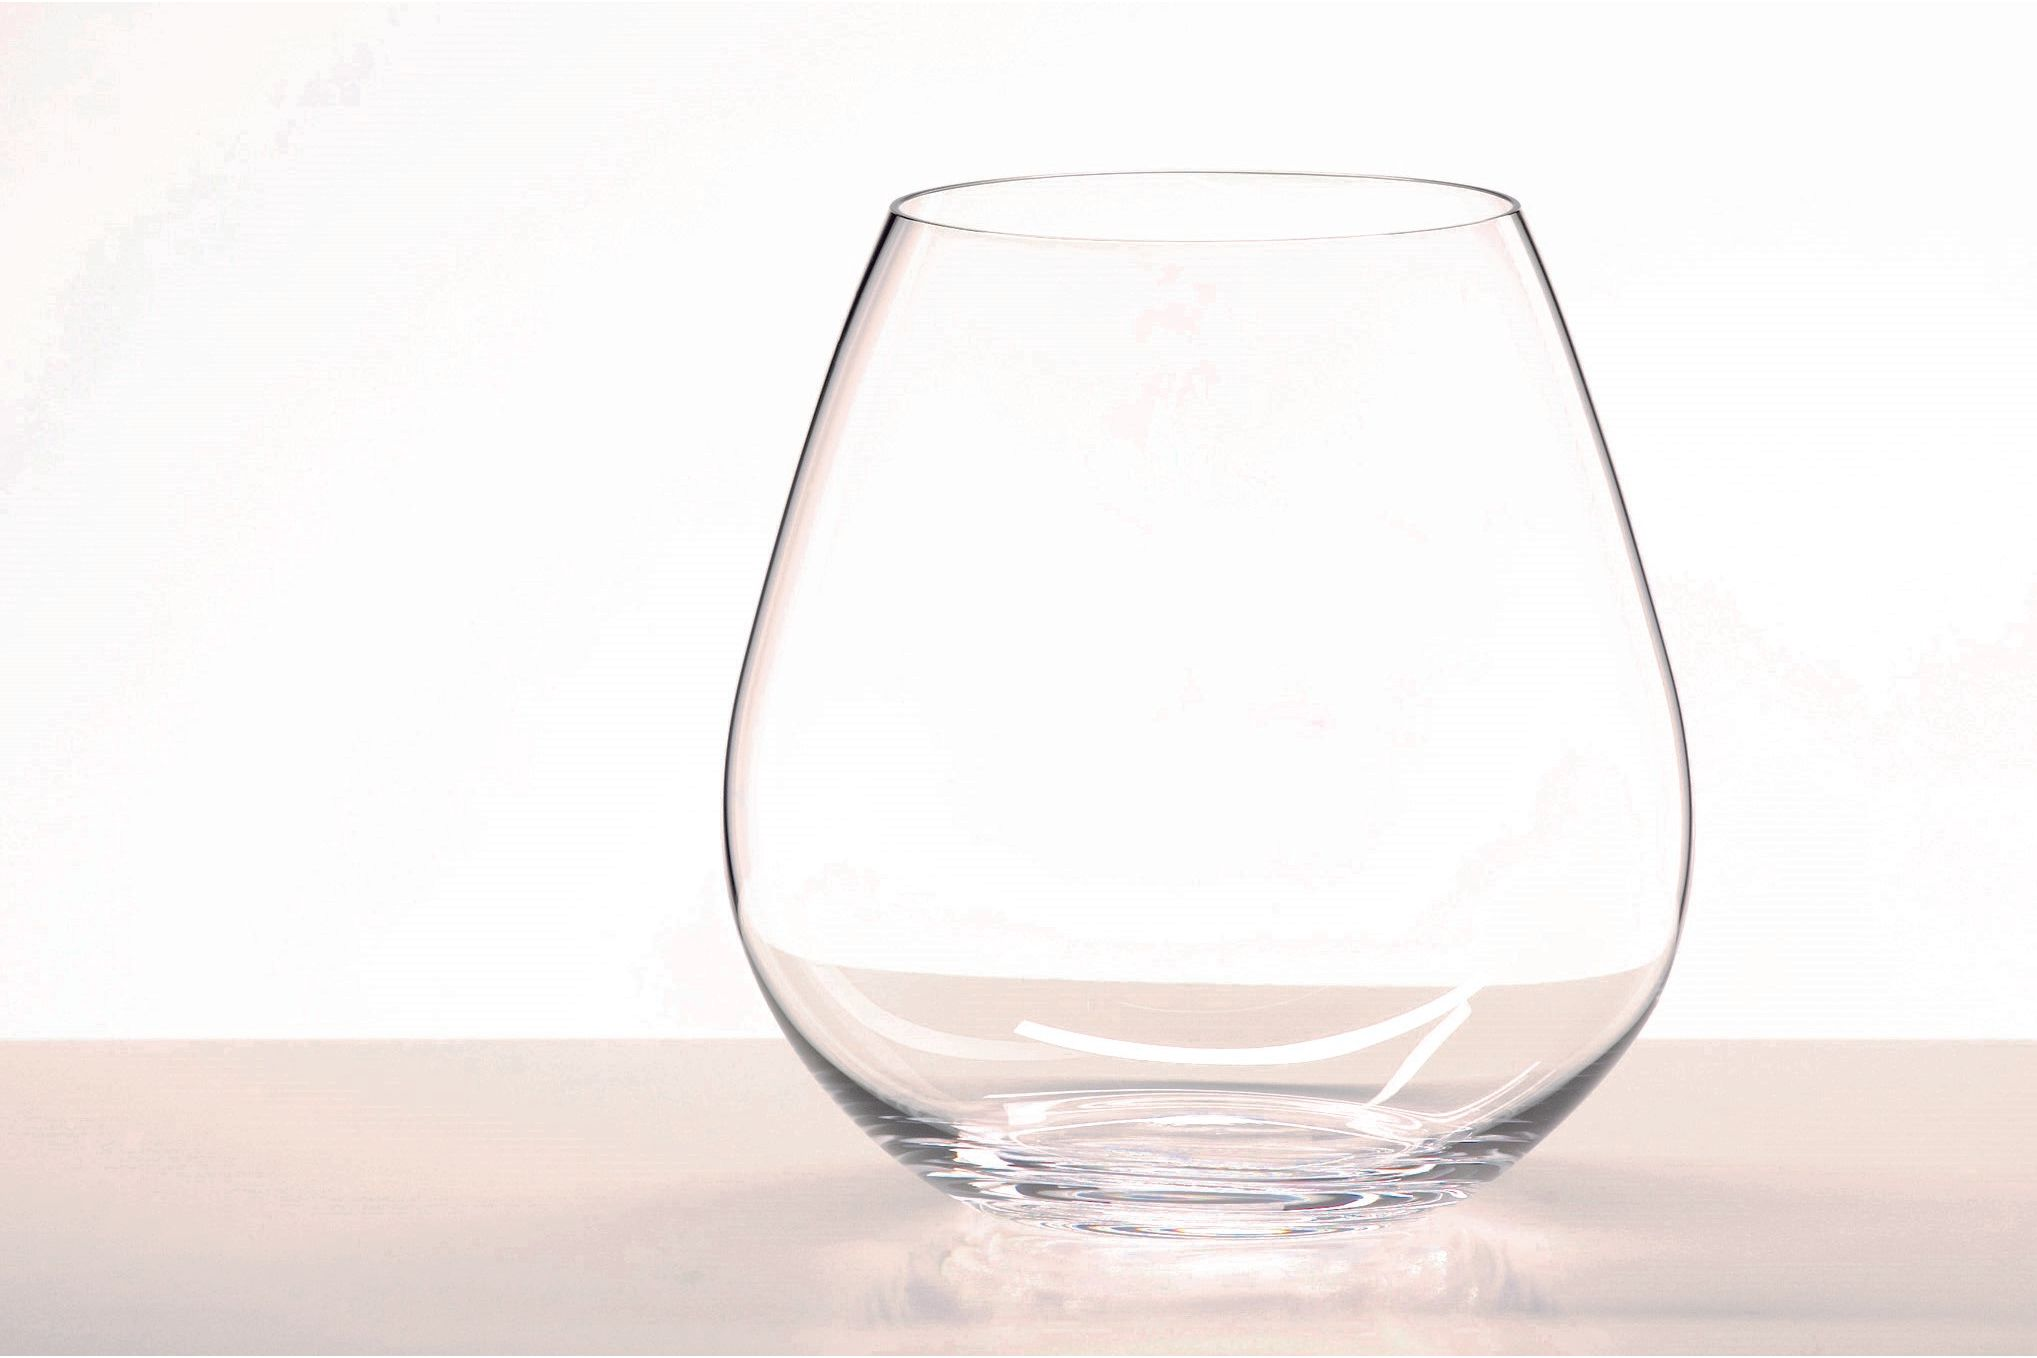 Riedel Riedel O Pair of Red Wine Glasses Pinot/Nebbiolo 690ml thumb 2